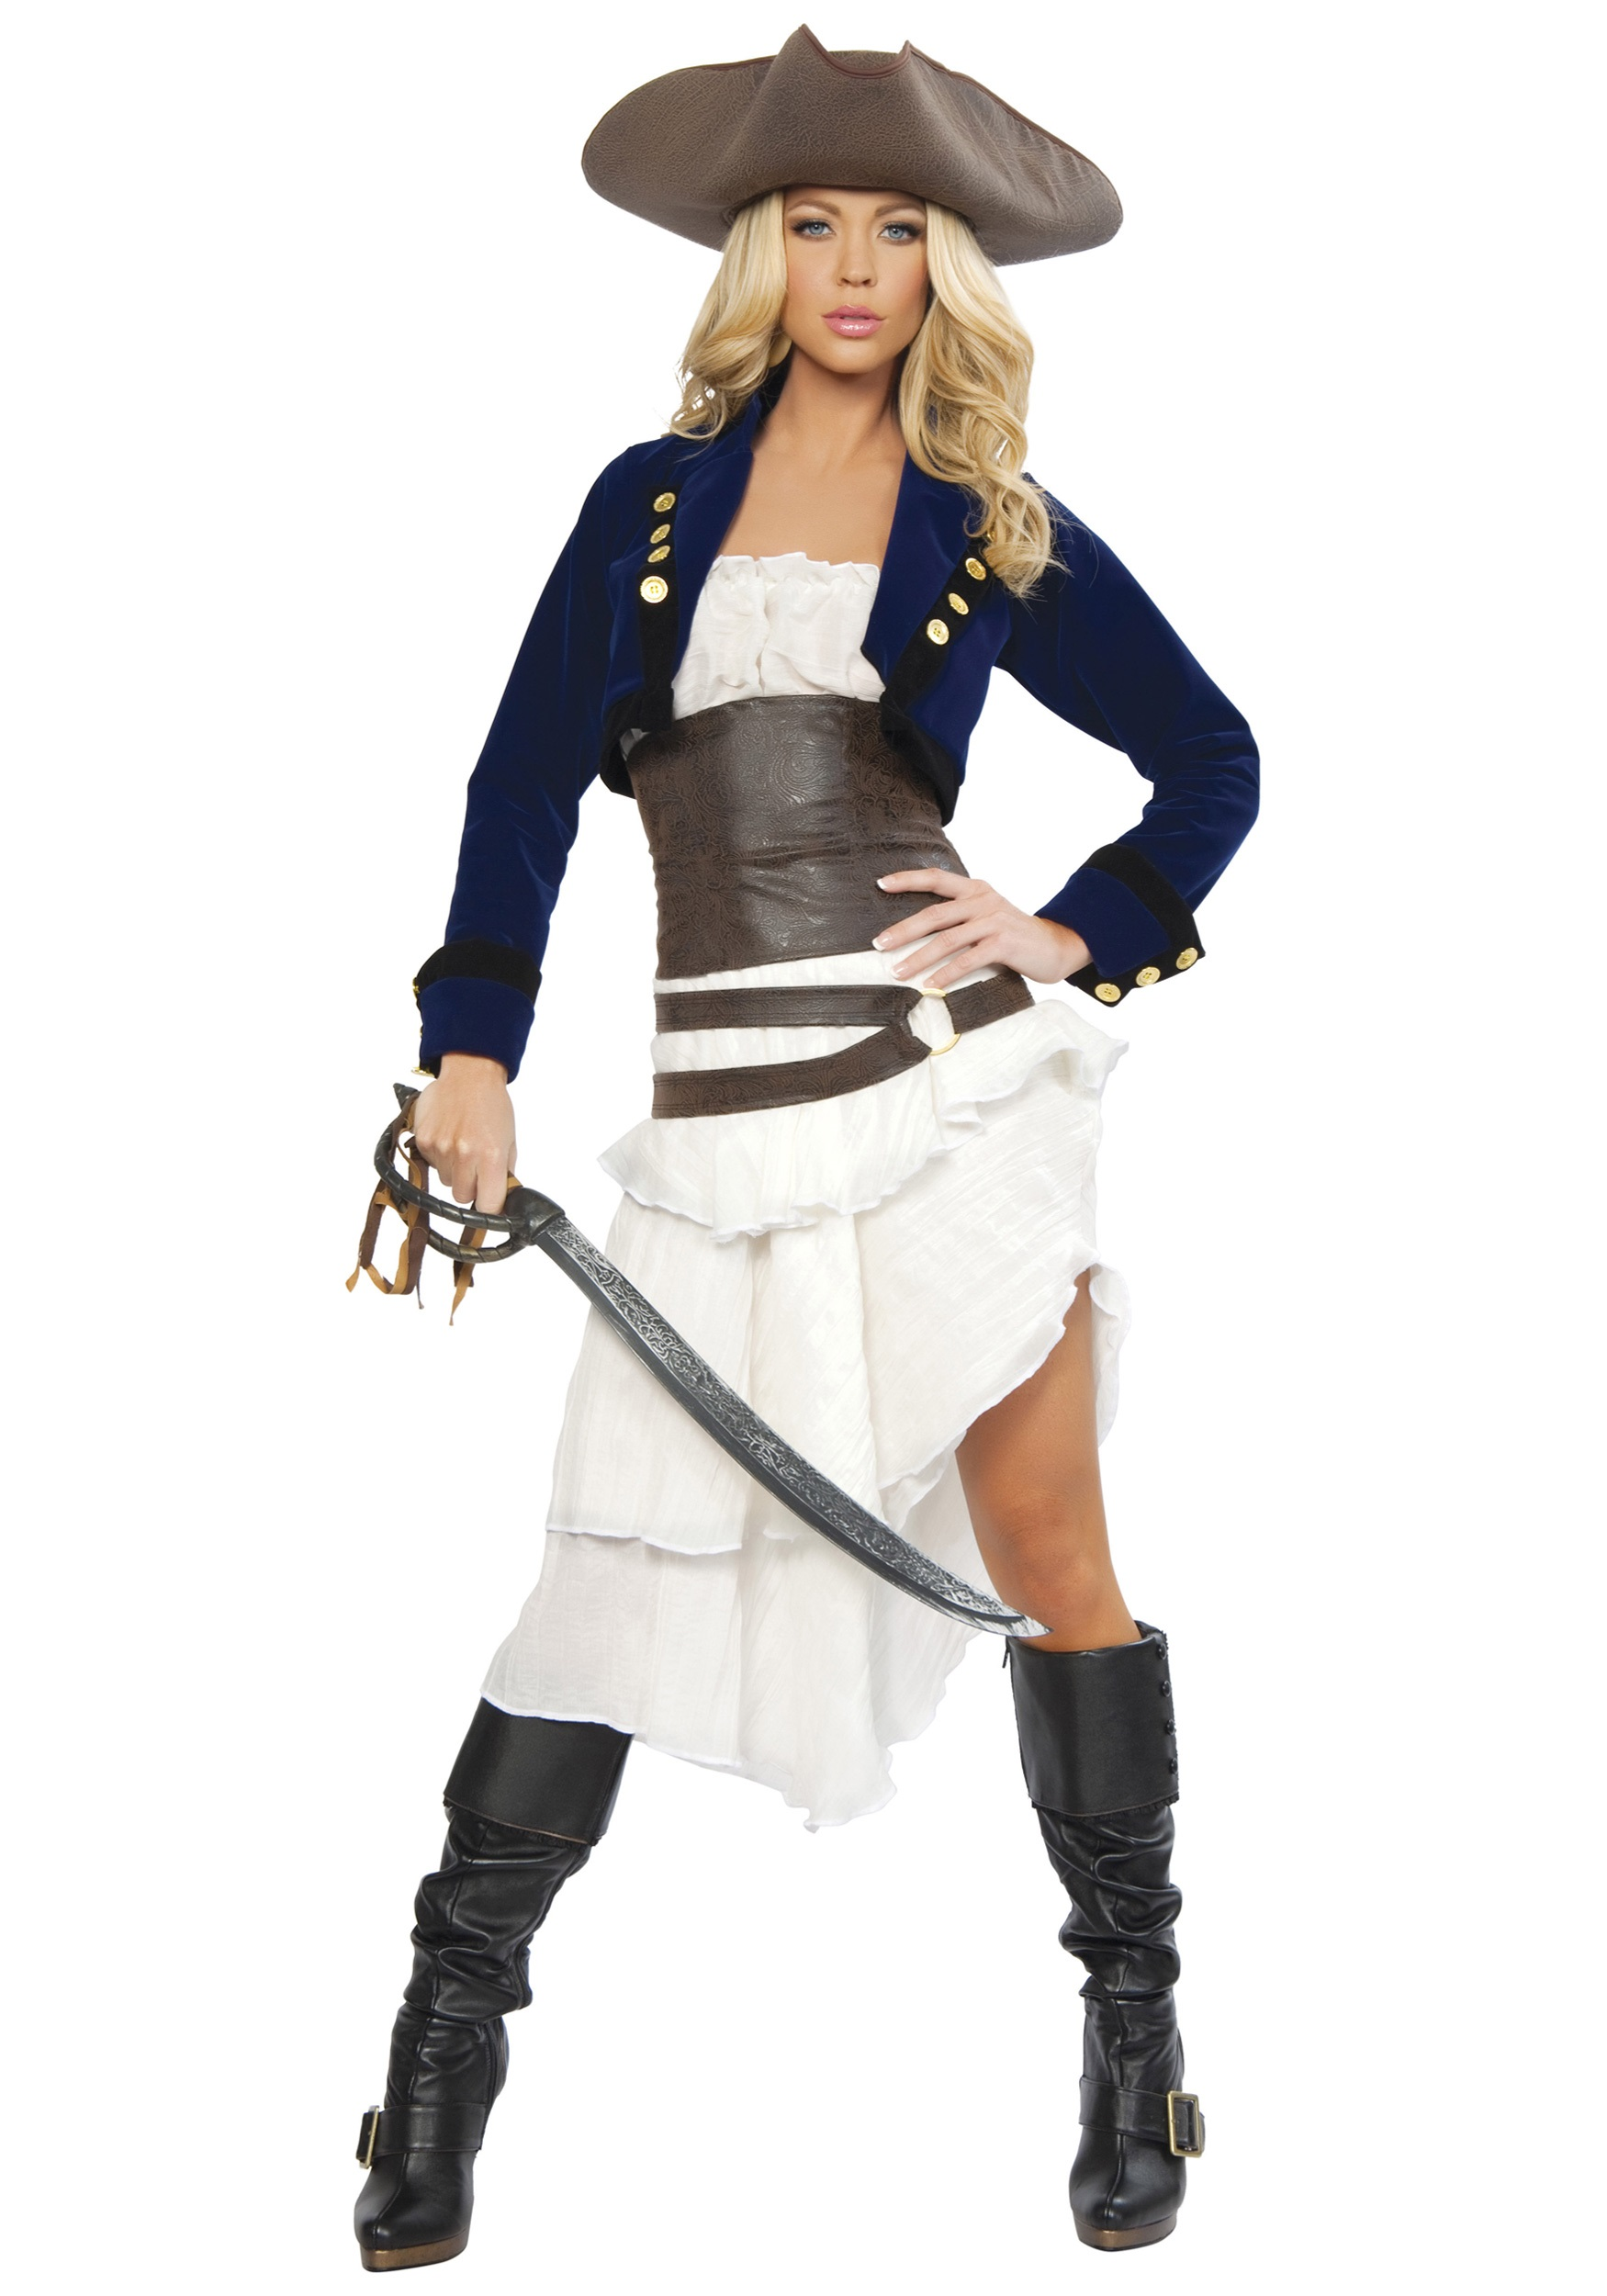 Women's Costumes Sexy Costumes High Quality Deluxe Sexy Pirate Costume Adult Women Halloween Carnival Party Cosplay Caribbean Pirates Fancy Dress